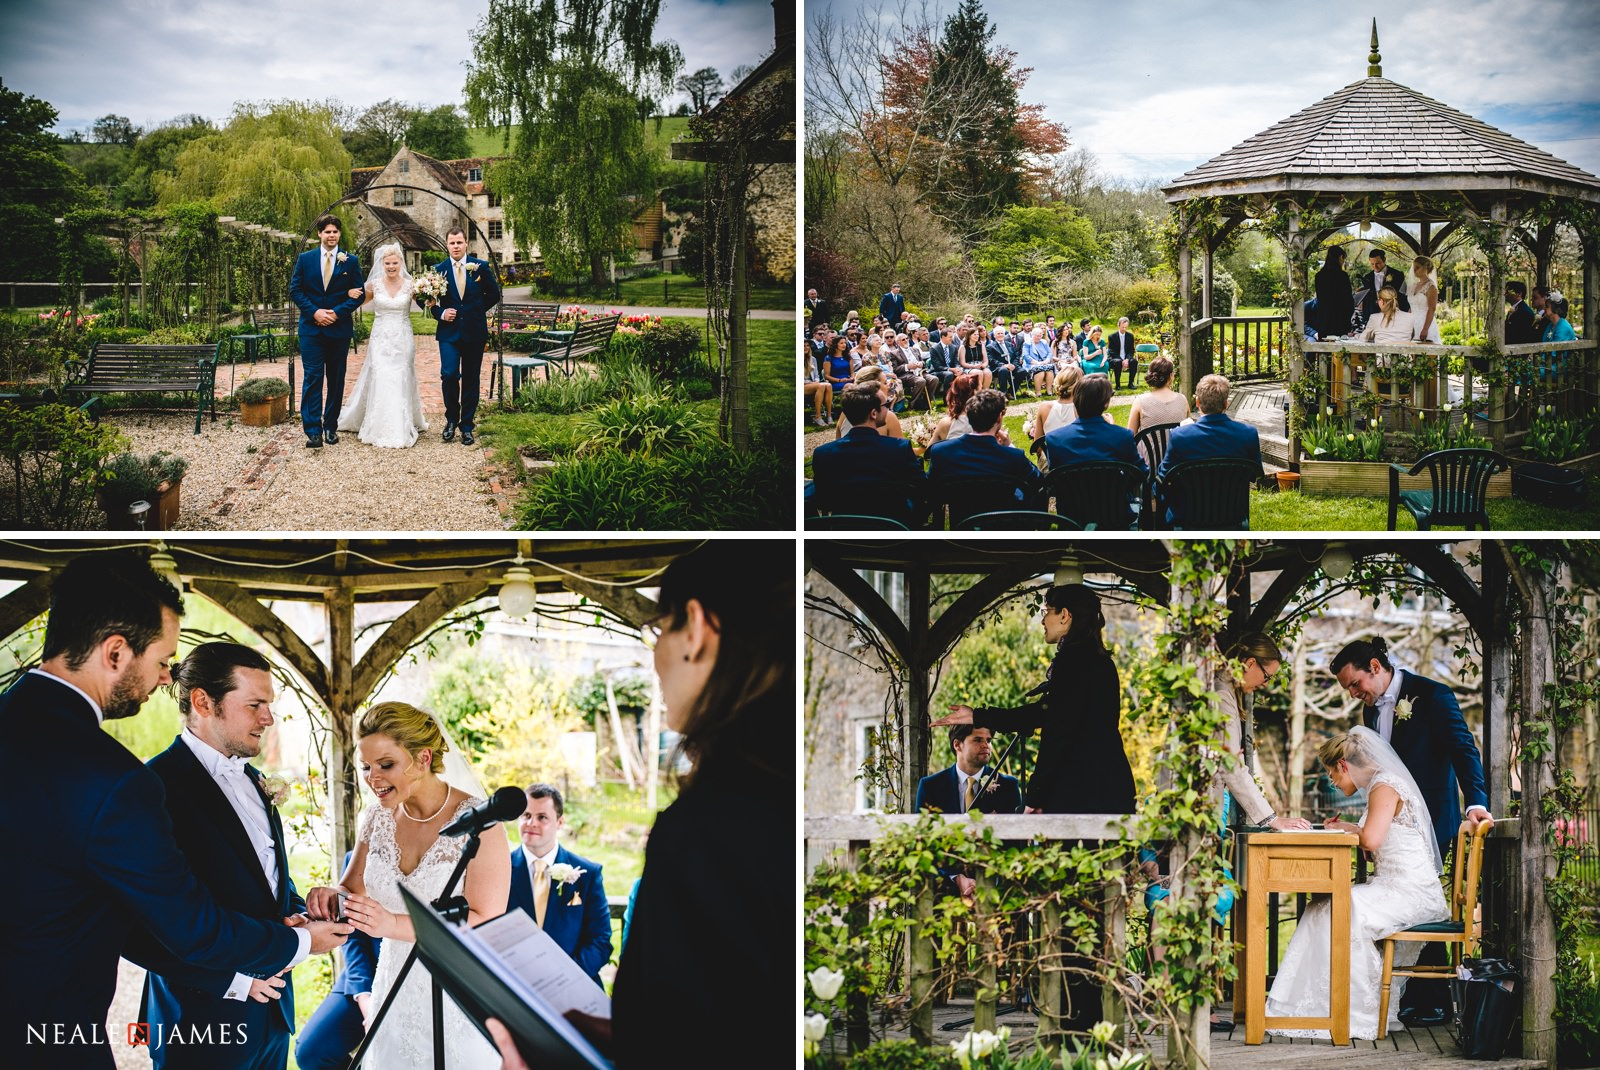 A collection of images showing the arrival of the bride and the outdoor wedding ceremony at Gants Mill in Somerset